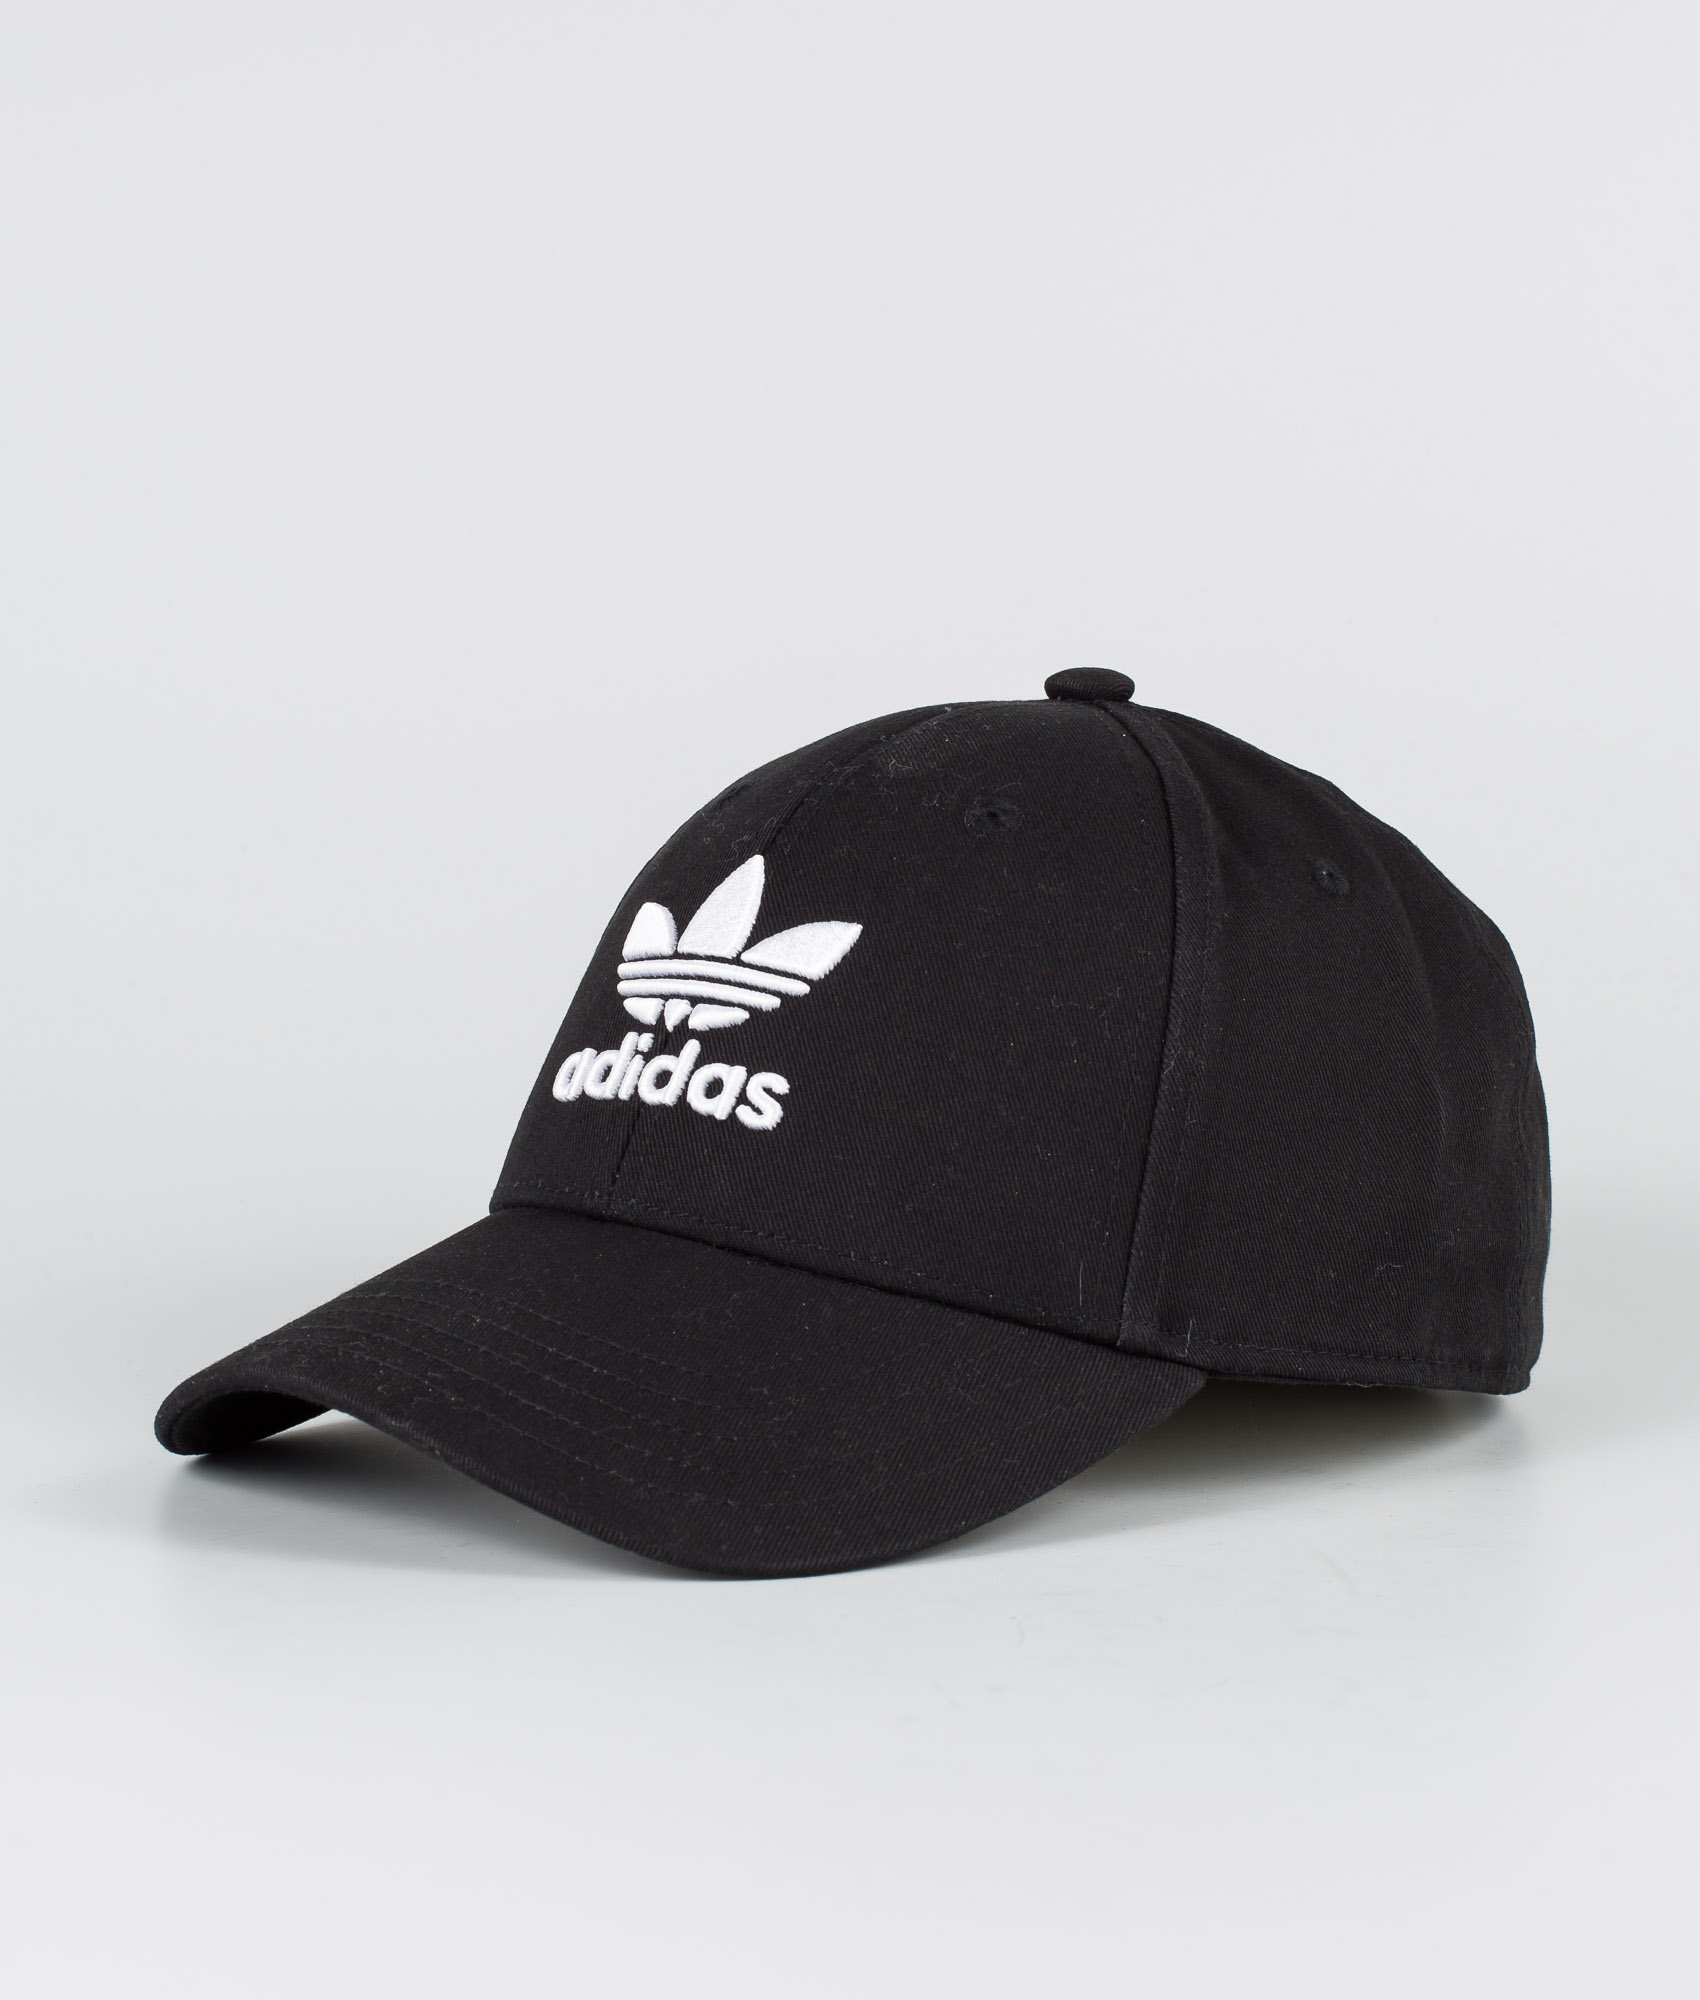 Adidas Originals Baseball Class Trefoil Caps BlackWhite